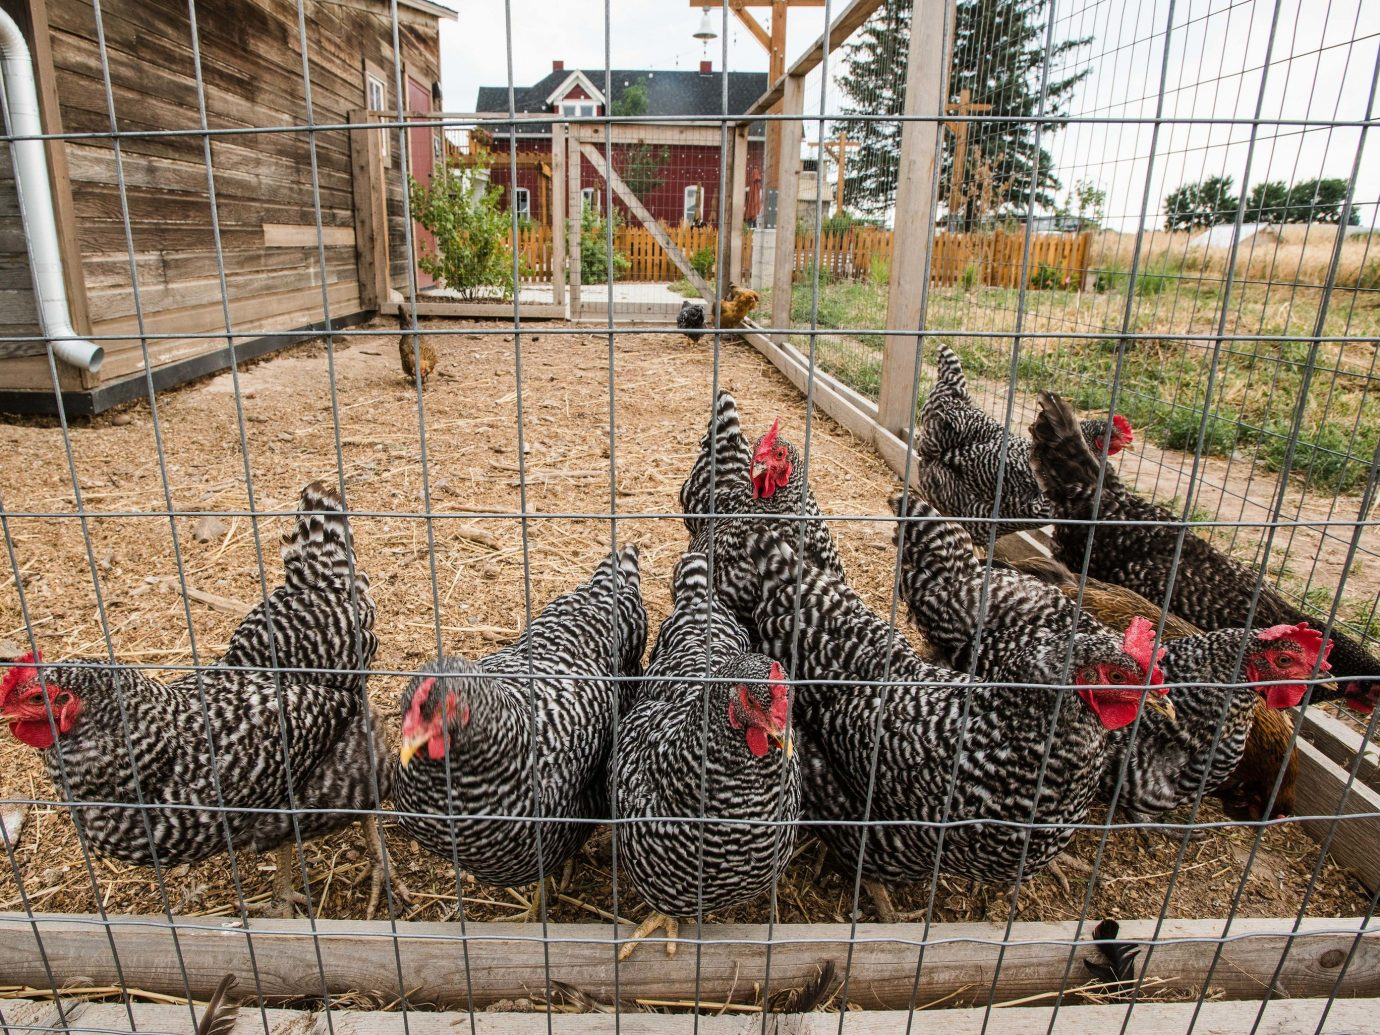 Trip Ideas Fence grass sheep outdoor chicken Bird galliformes cage animal pen gallinaceous bird rooster hay livestock poultry group gate wire phasianidae metal fowl beak Farm area chicken coop